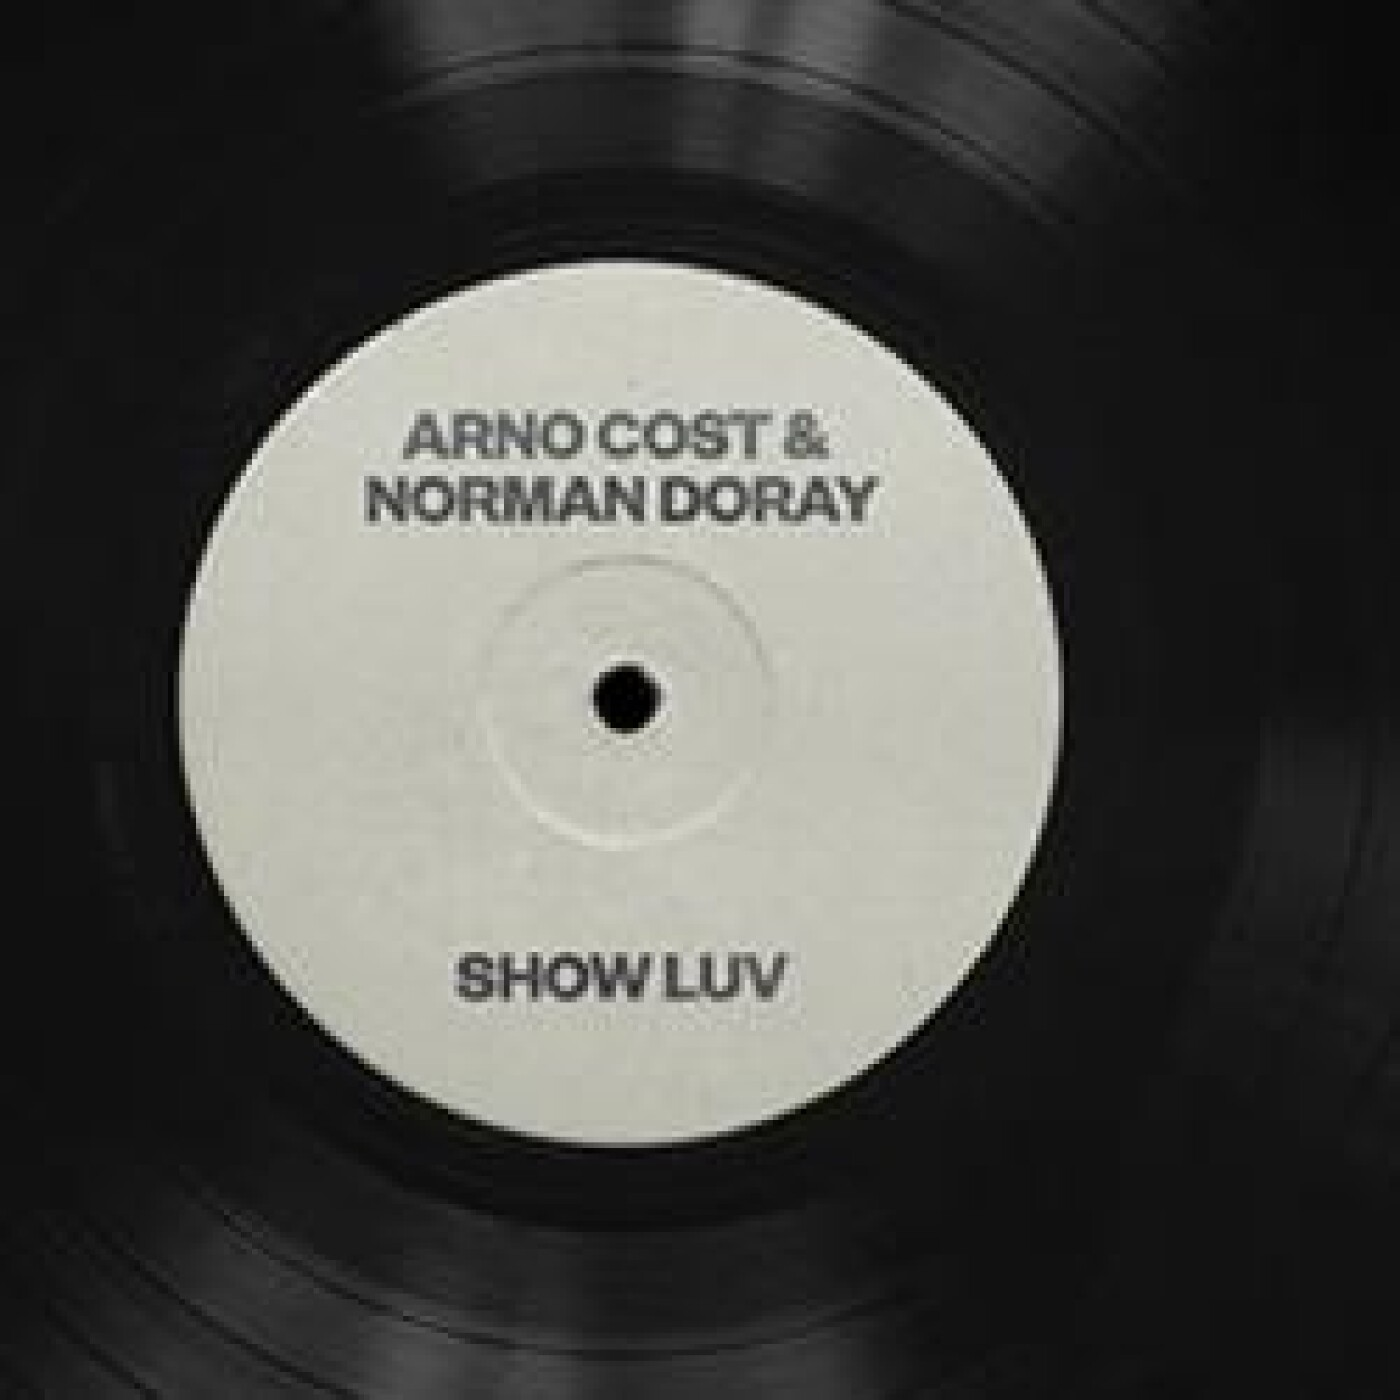 FG MUSIC NEWS : 'Show Luv' d'Arno Cost & Norman Doray